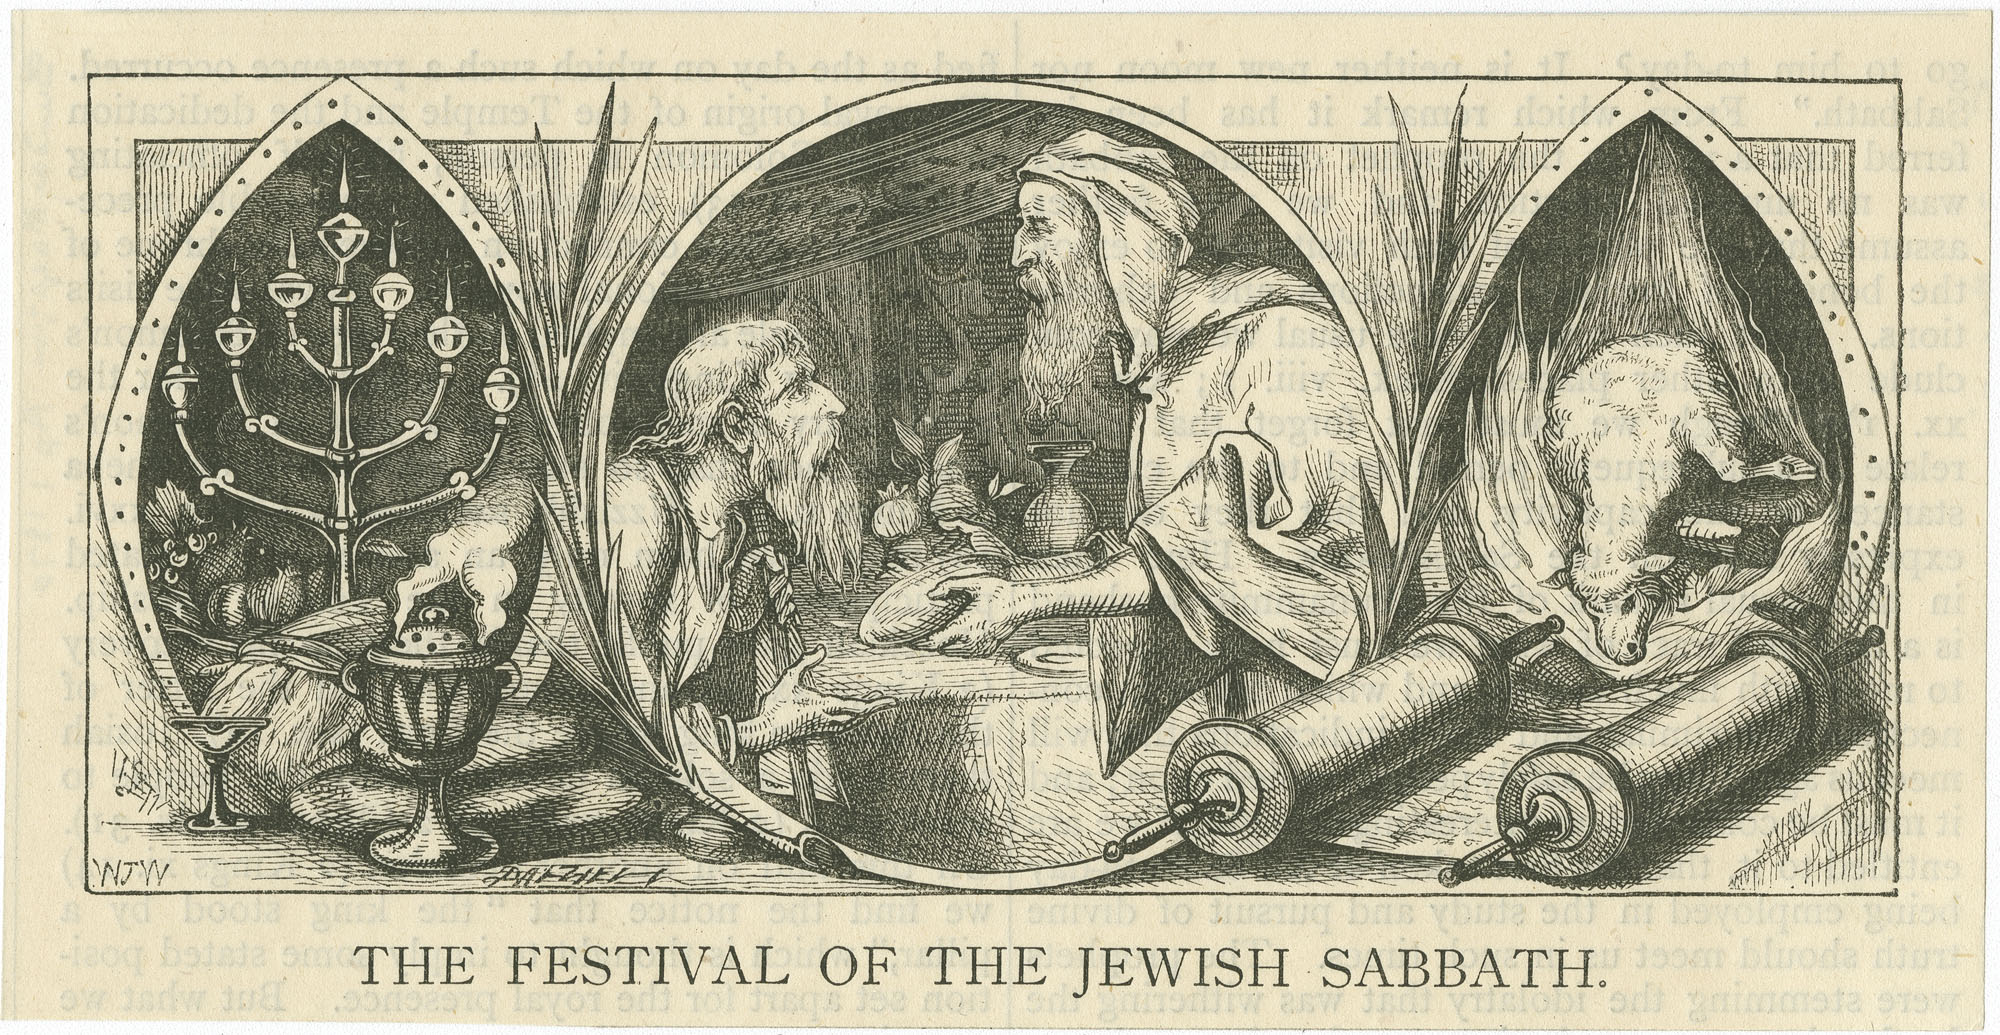 The Festival of the Jewish Sabbath